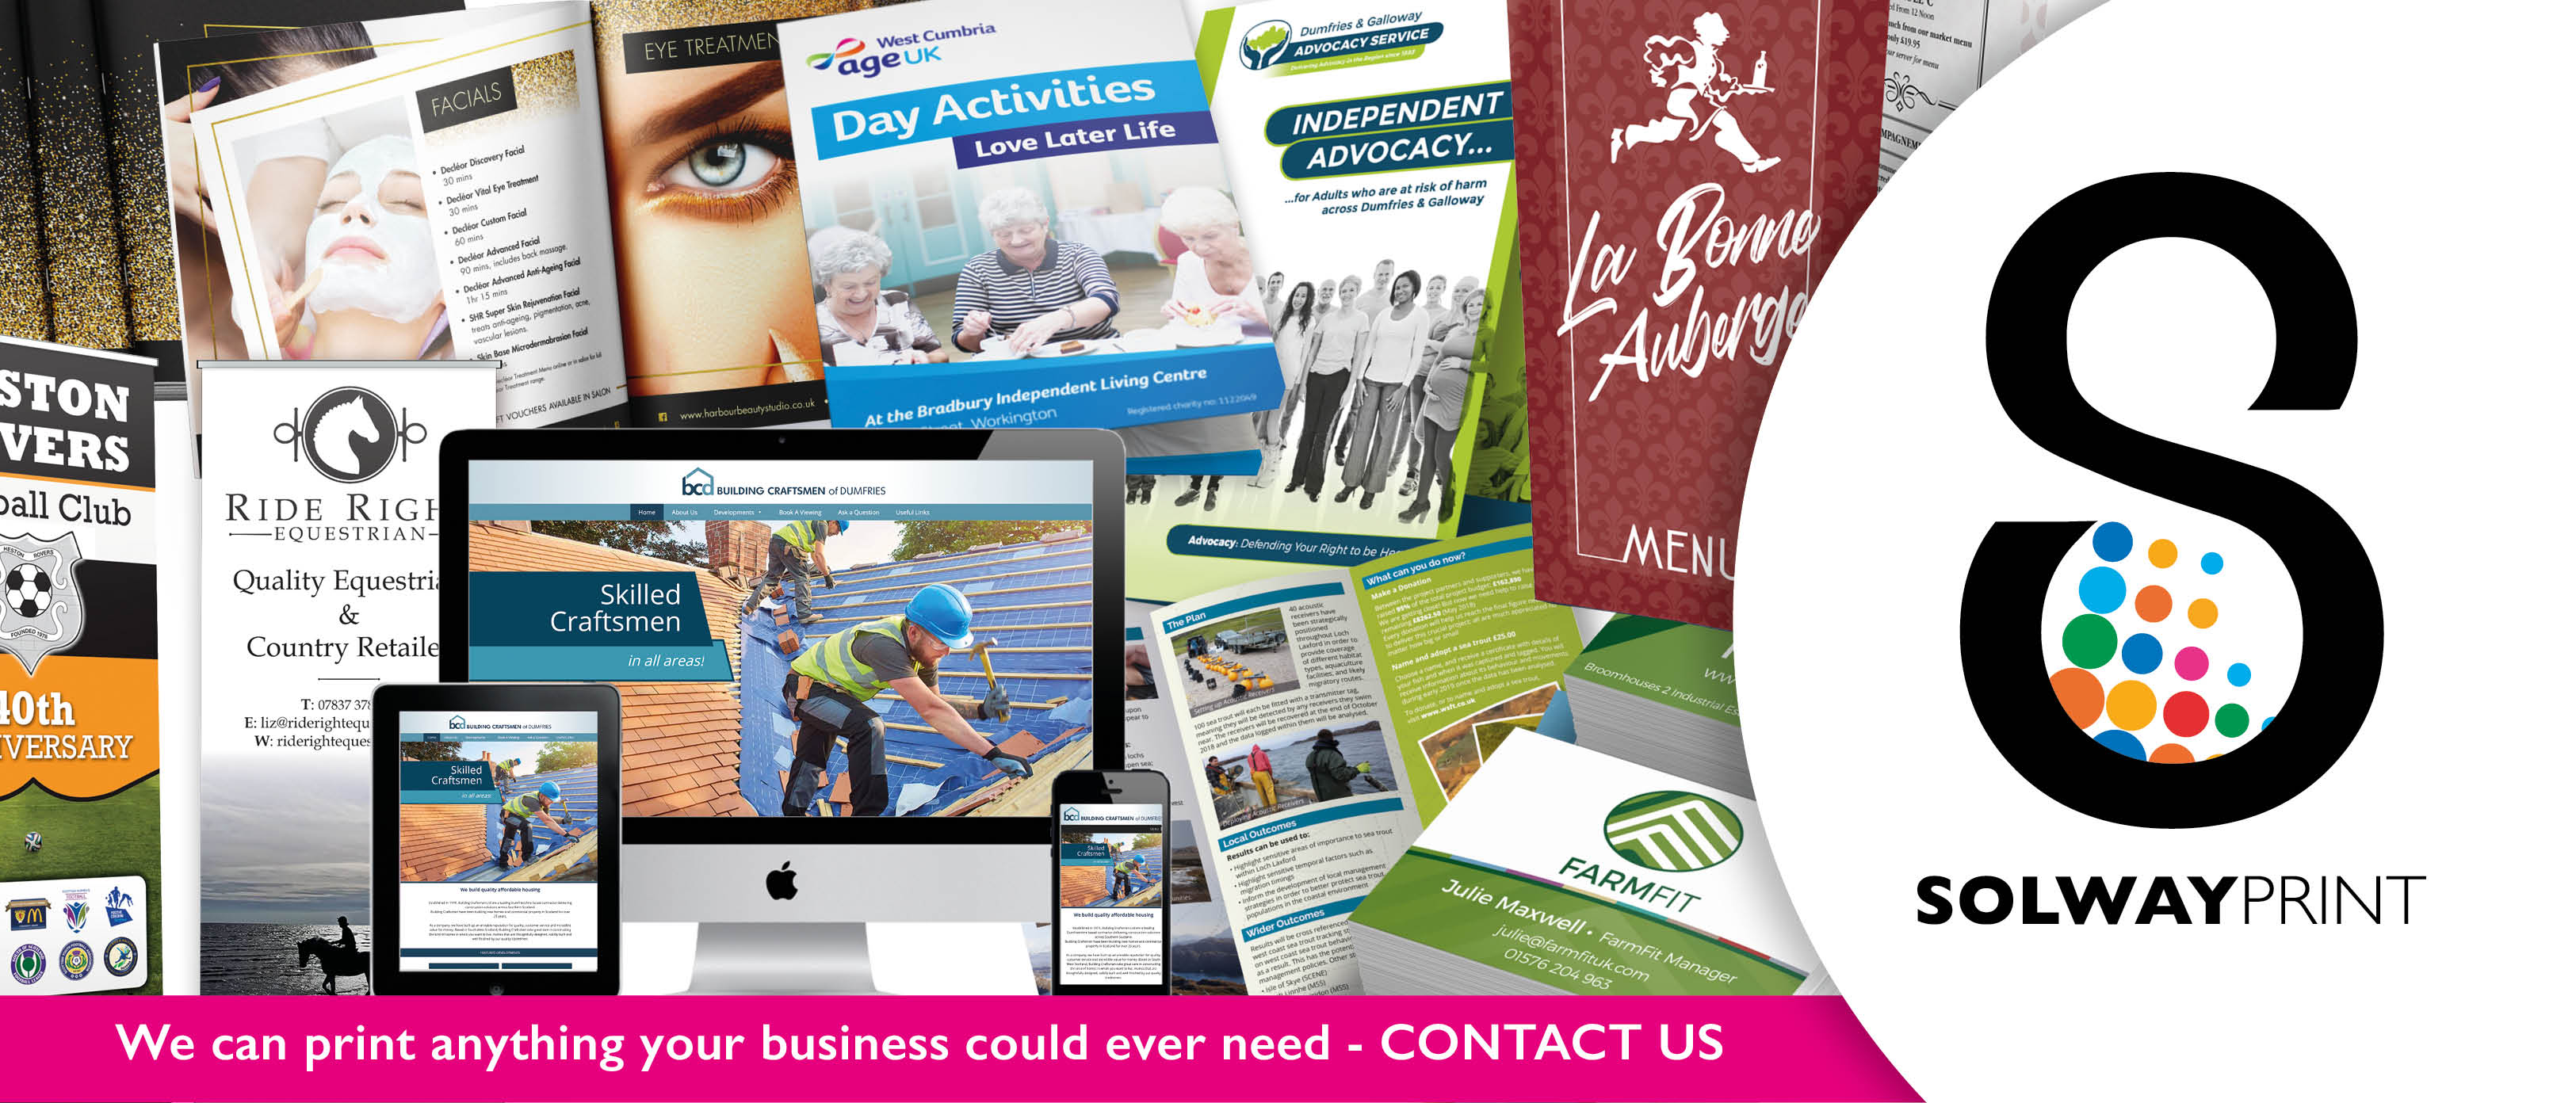 Solway Print can print anything your business could ever need.